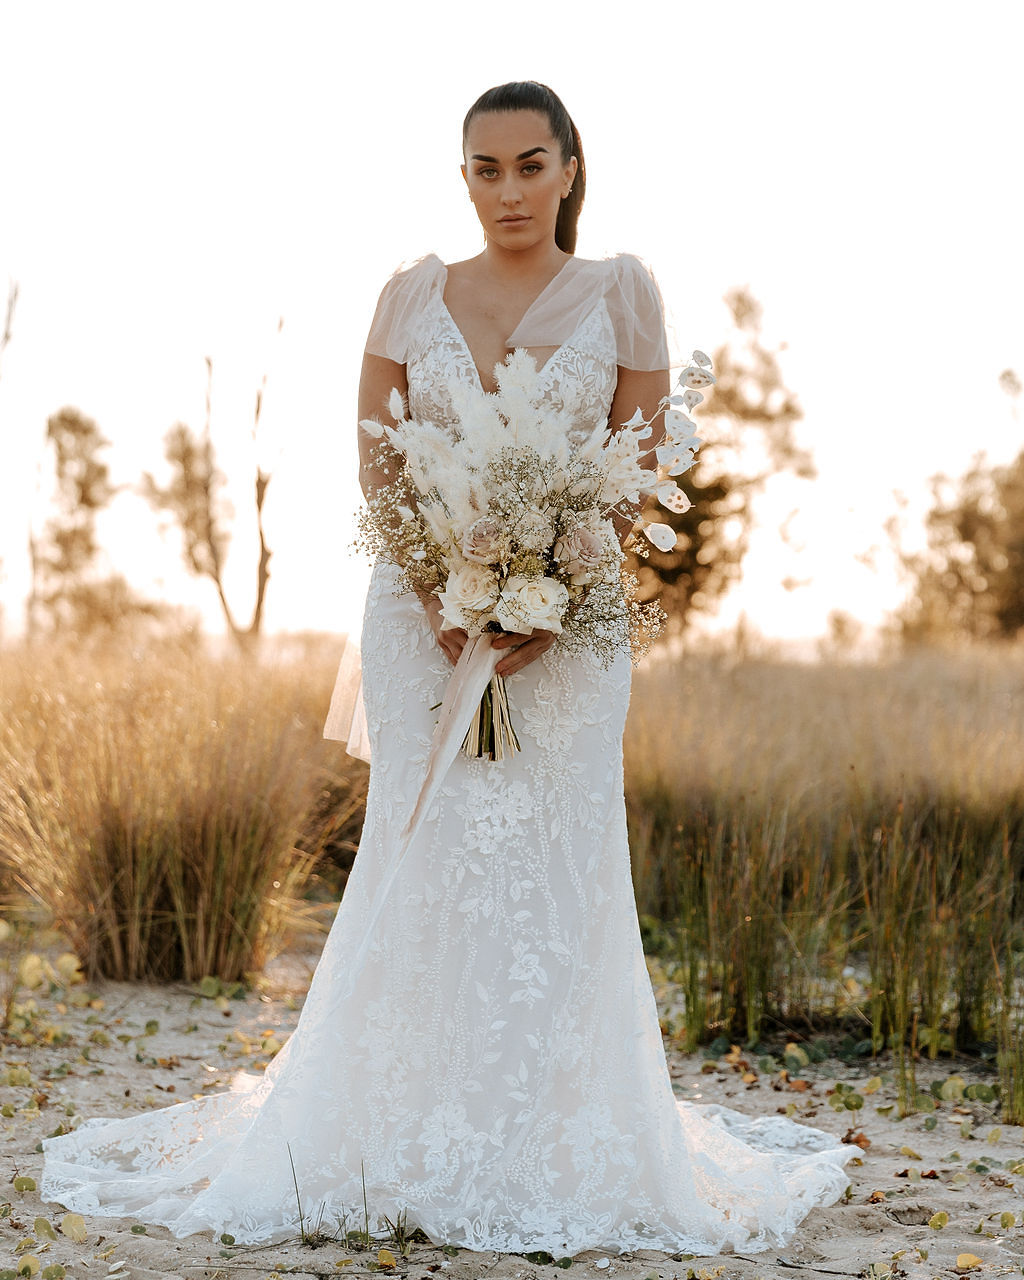 Leiafae Weddings photography bridal gowns bride dress floral designer australian